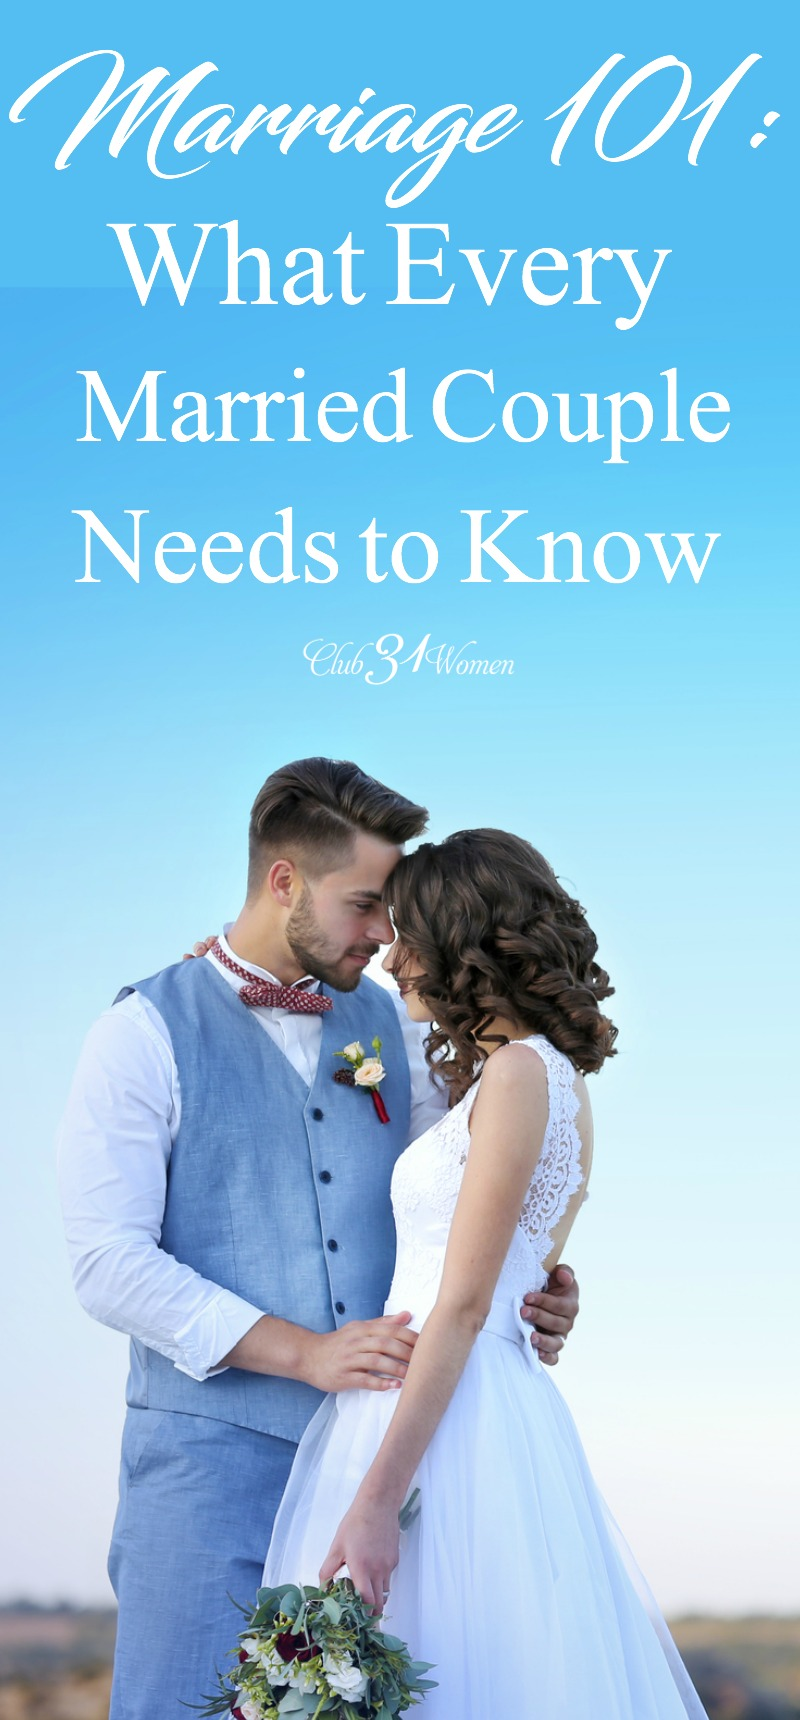 They might not have covered this in your premarital counseling - but they probably should have! Here's what you should really know about love and marriage! via @Club31Women